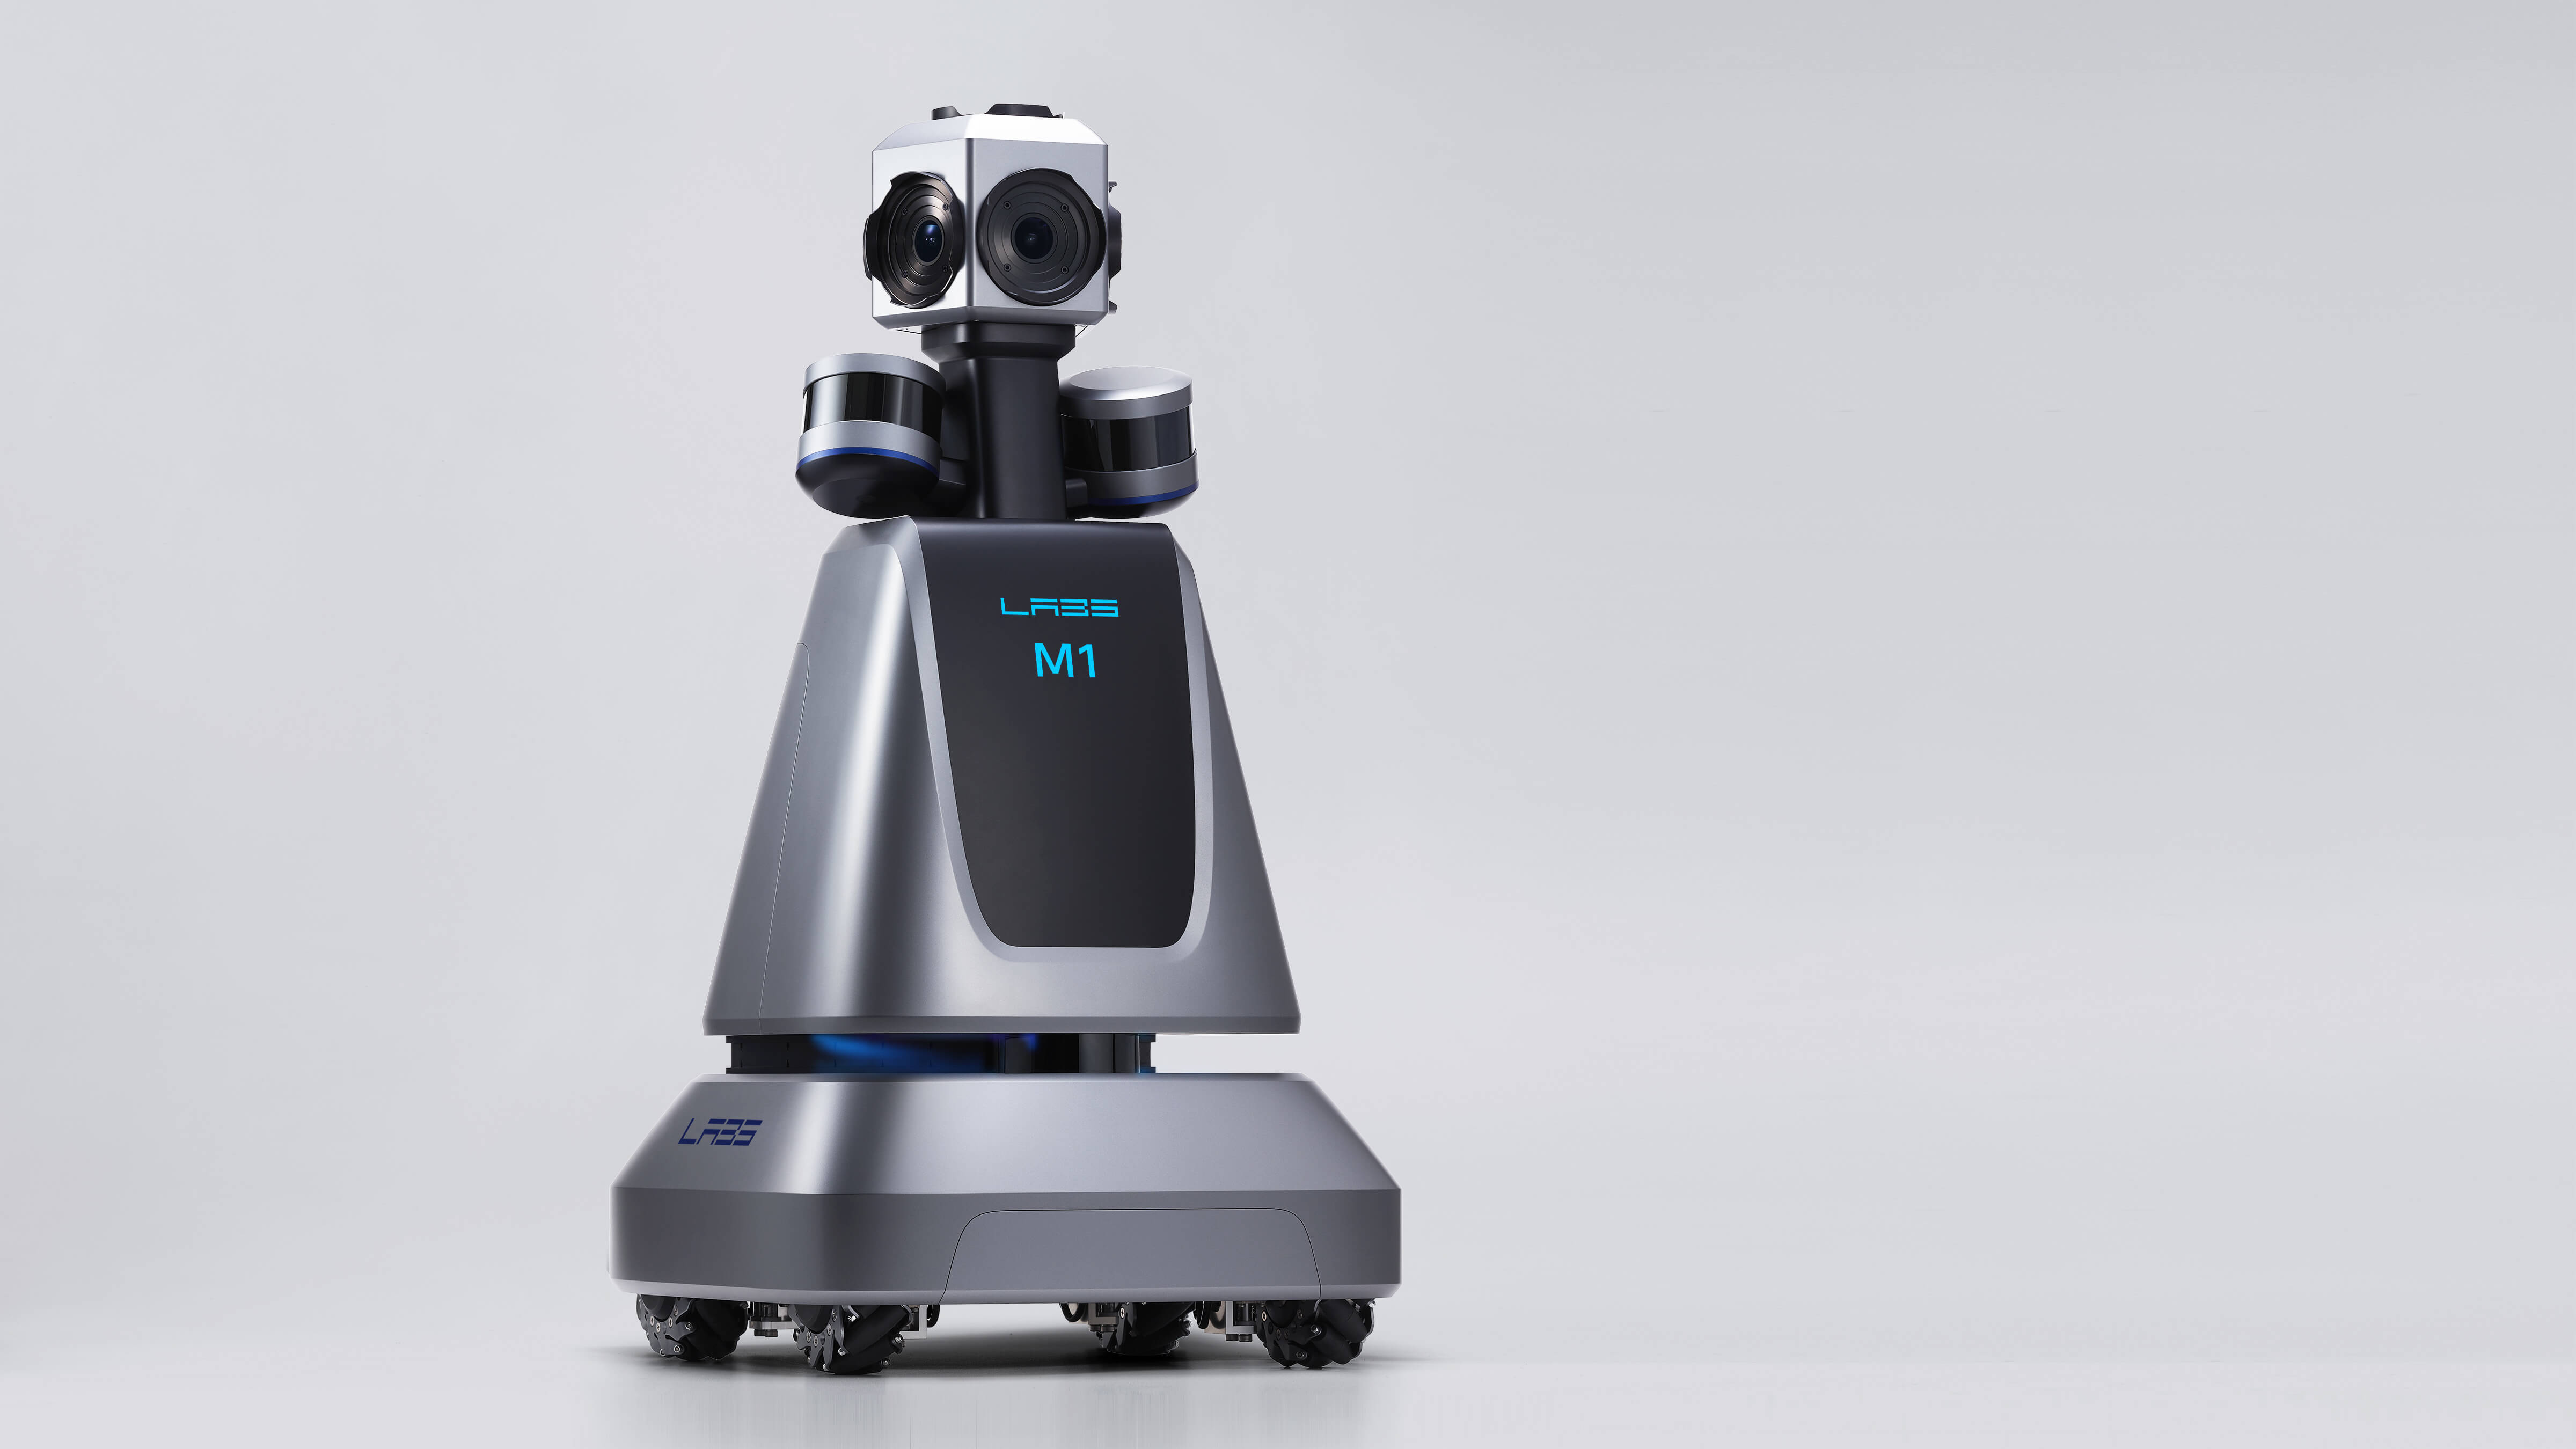 6_-3D-indoor-mapping-robot-M1.jpg